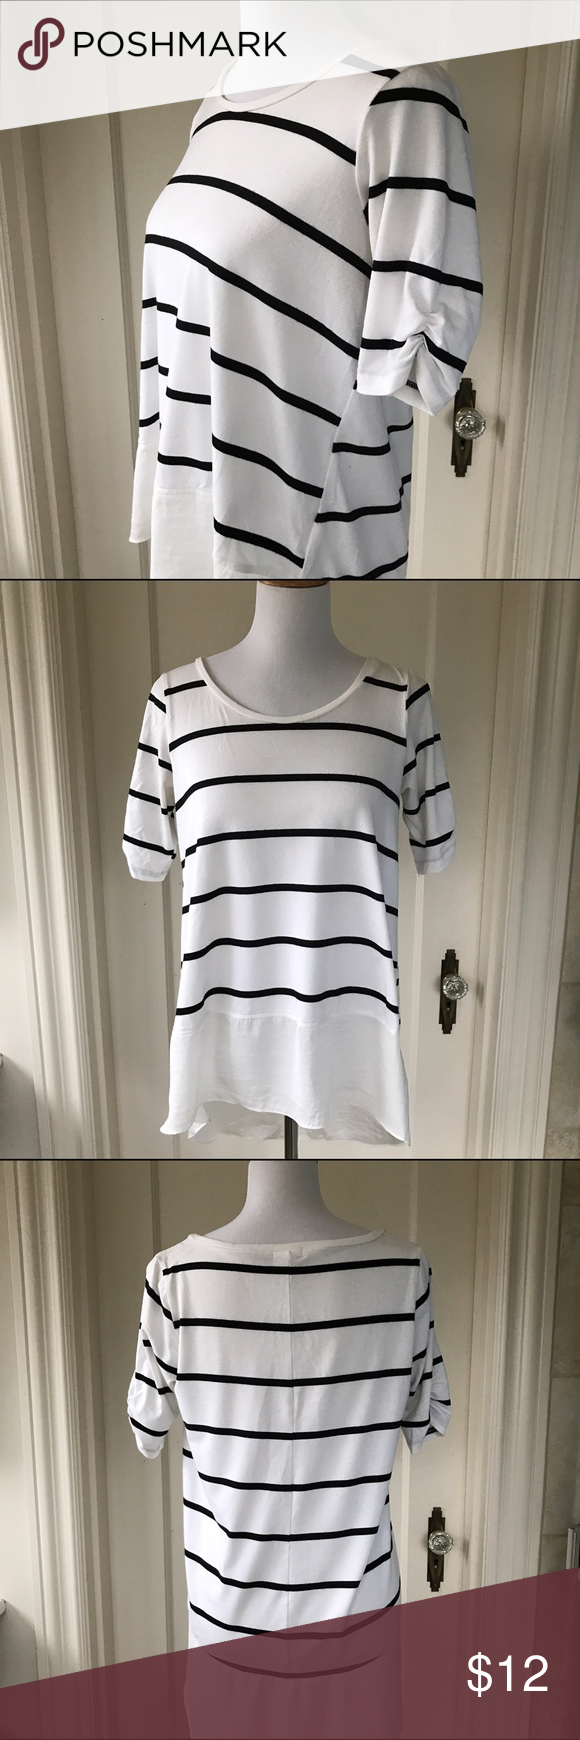 Lili's Closet Striped Peplum Tee With with Black stripes. Ruching on sleeves. Light piling under arms, not visible when worn. 76% Rayon. 18% Polyester. 6% Spandex. Peplum 100% Polyester. Machine washable. Size S, could fit Medium. Anthropologie Tops Tees - Short Sleeve